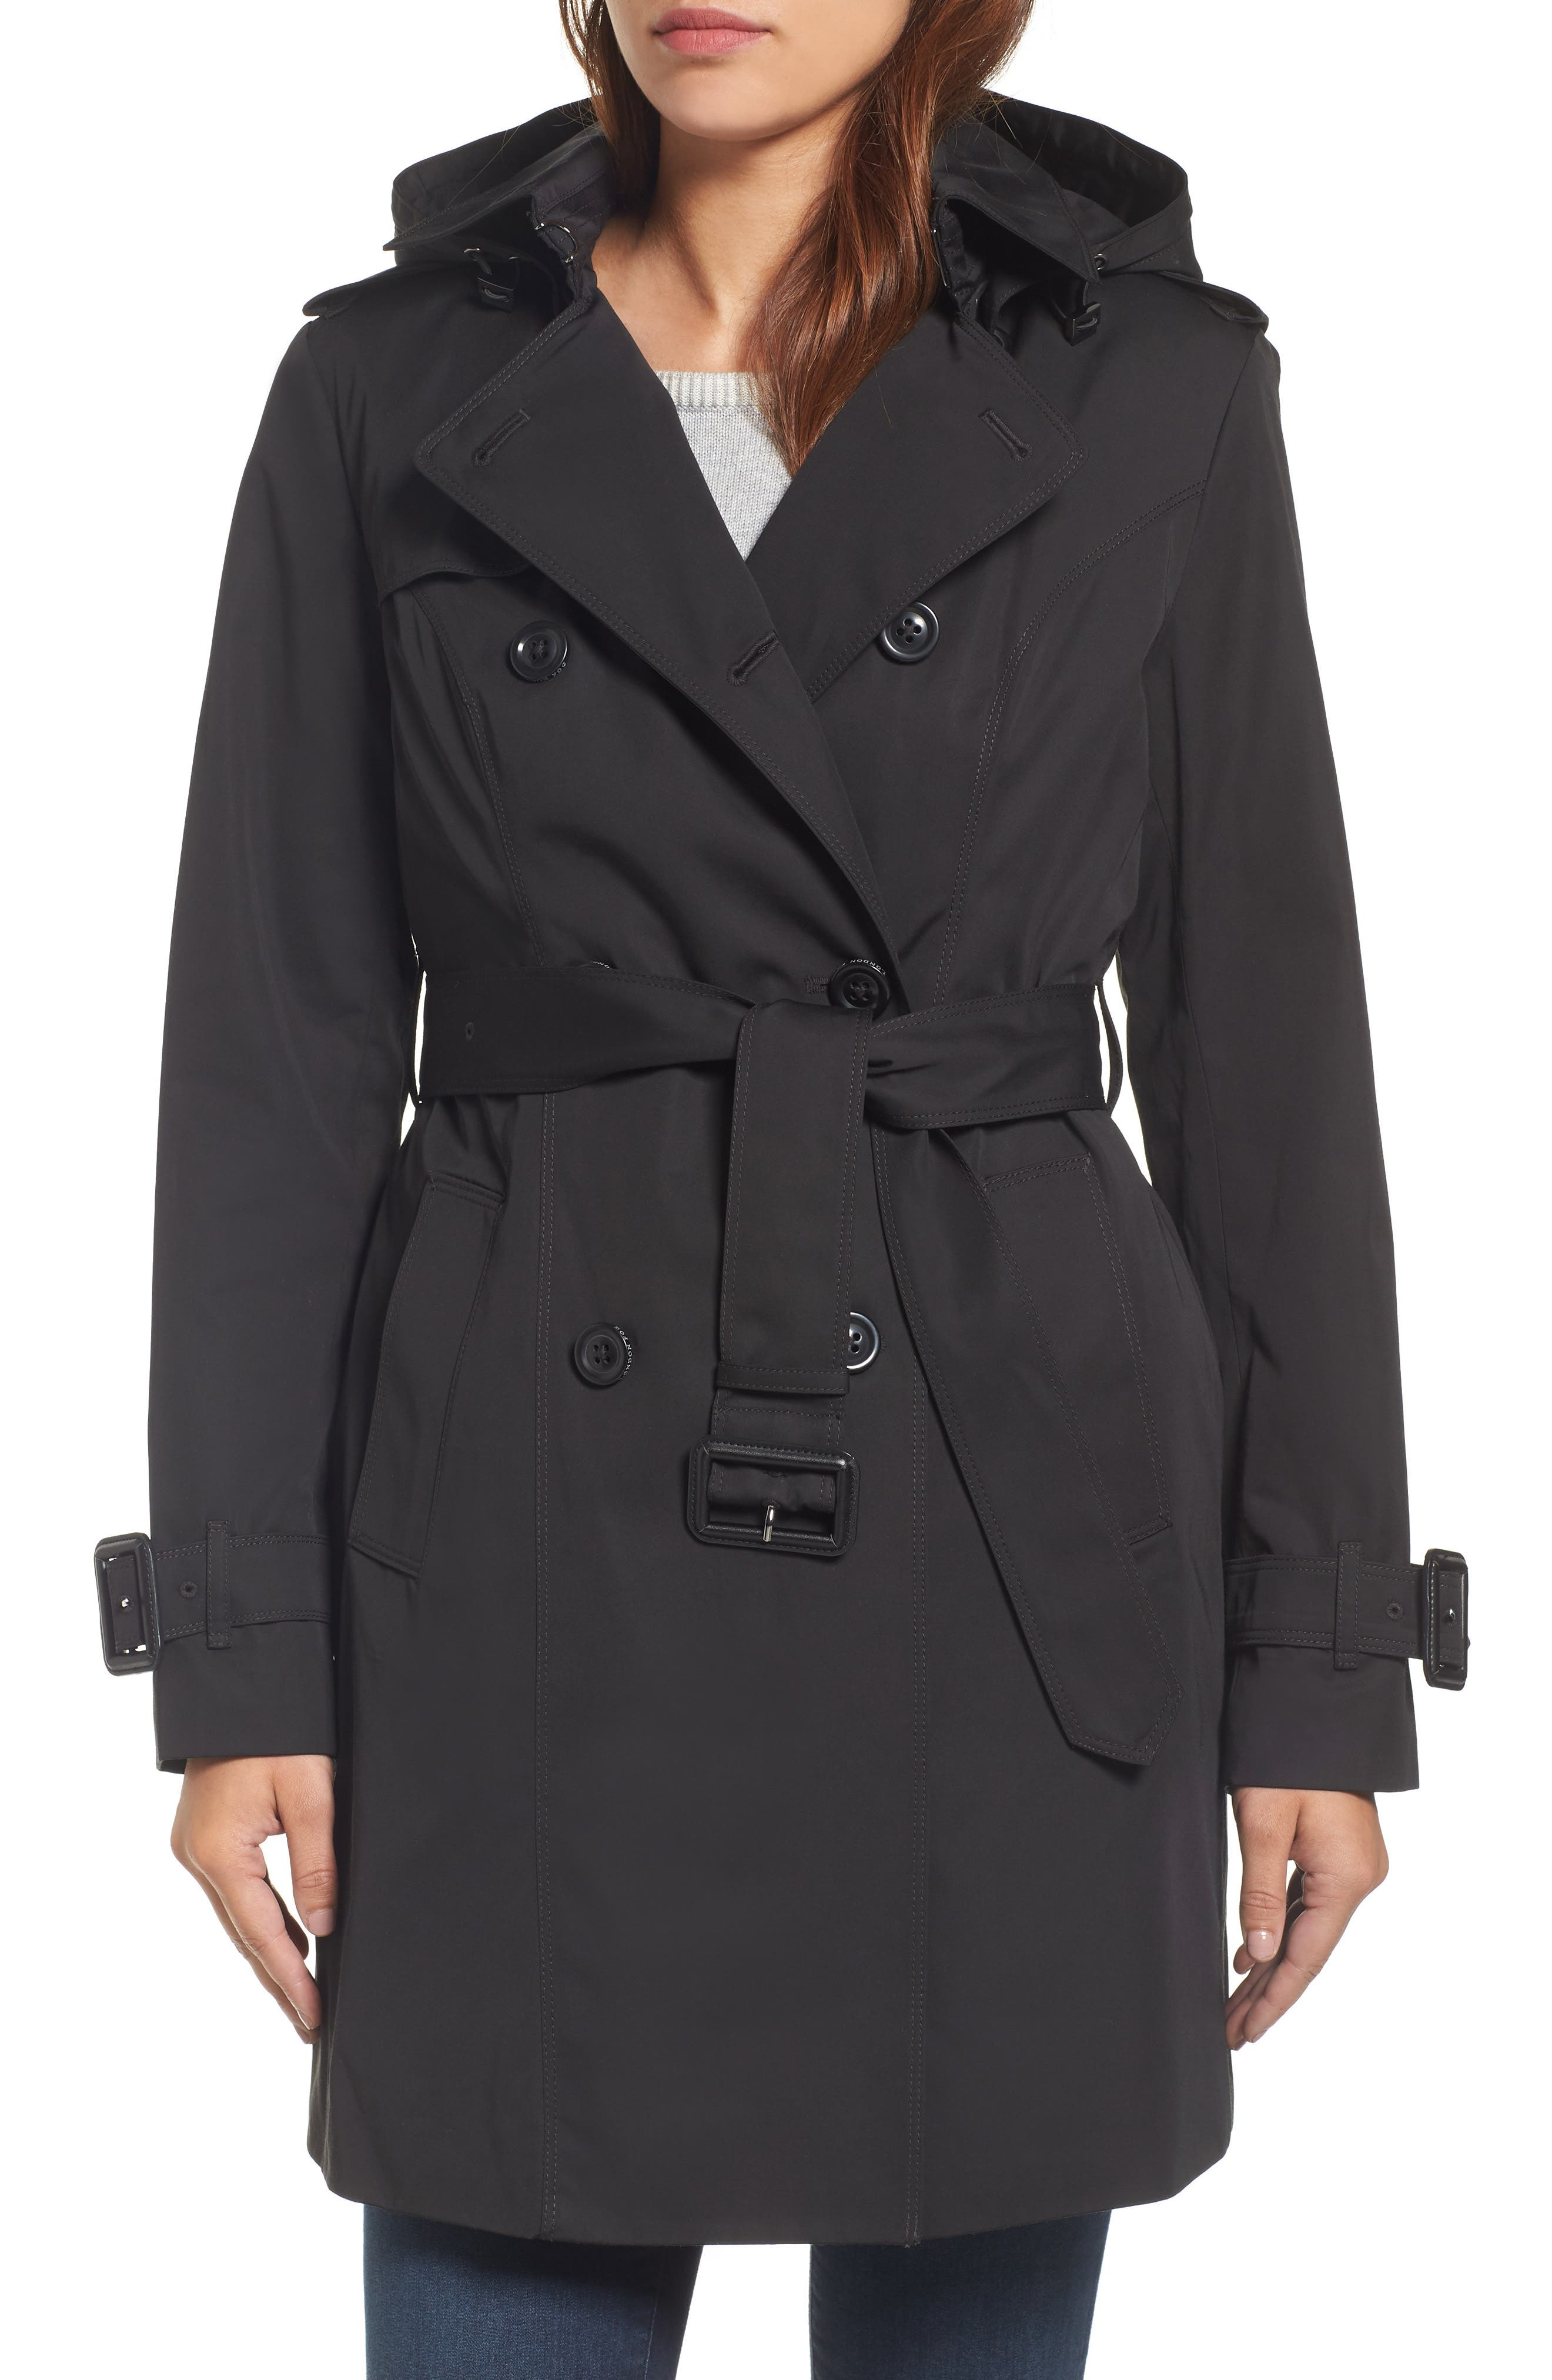 Heritage Trench Coat with Detachable Liner,                         Main,                         color, Black